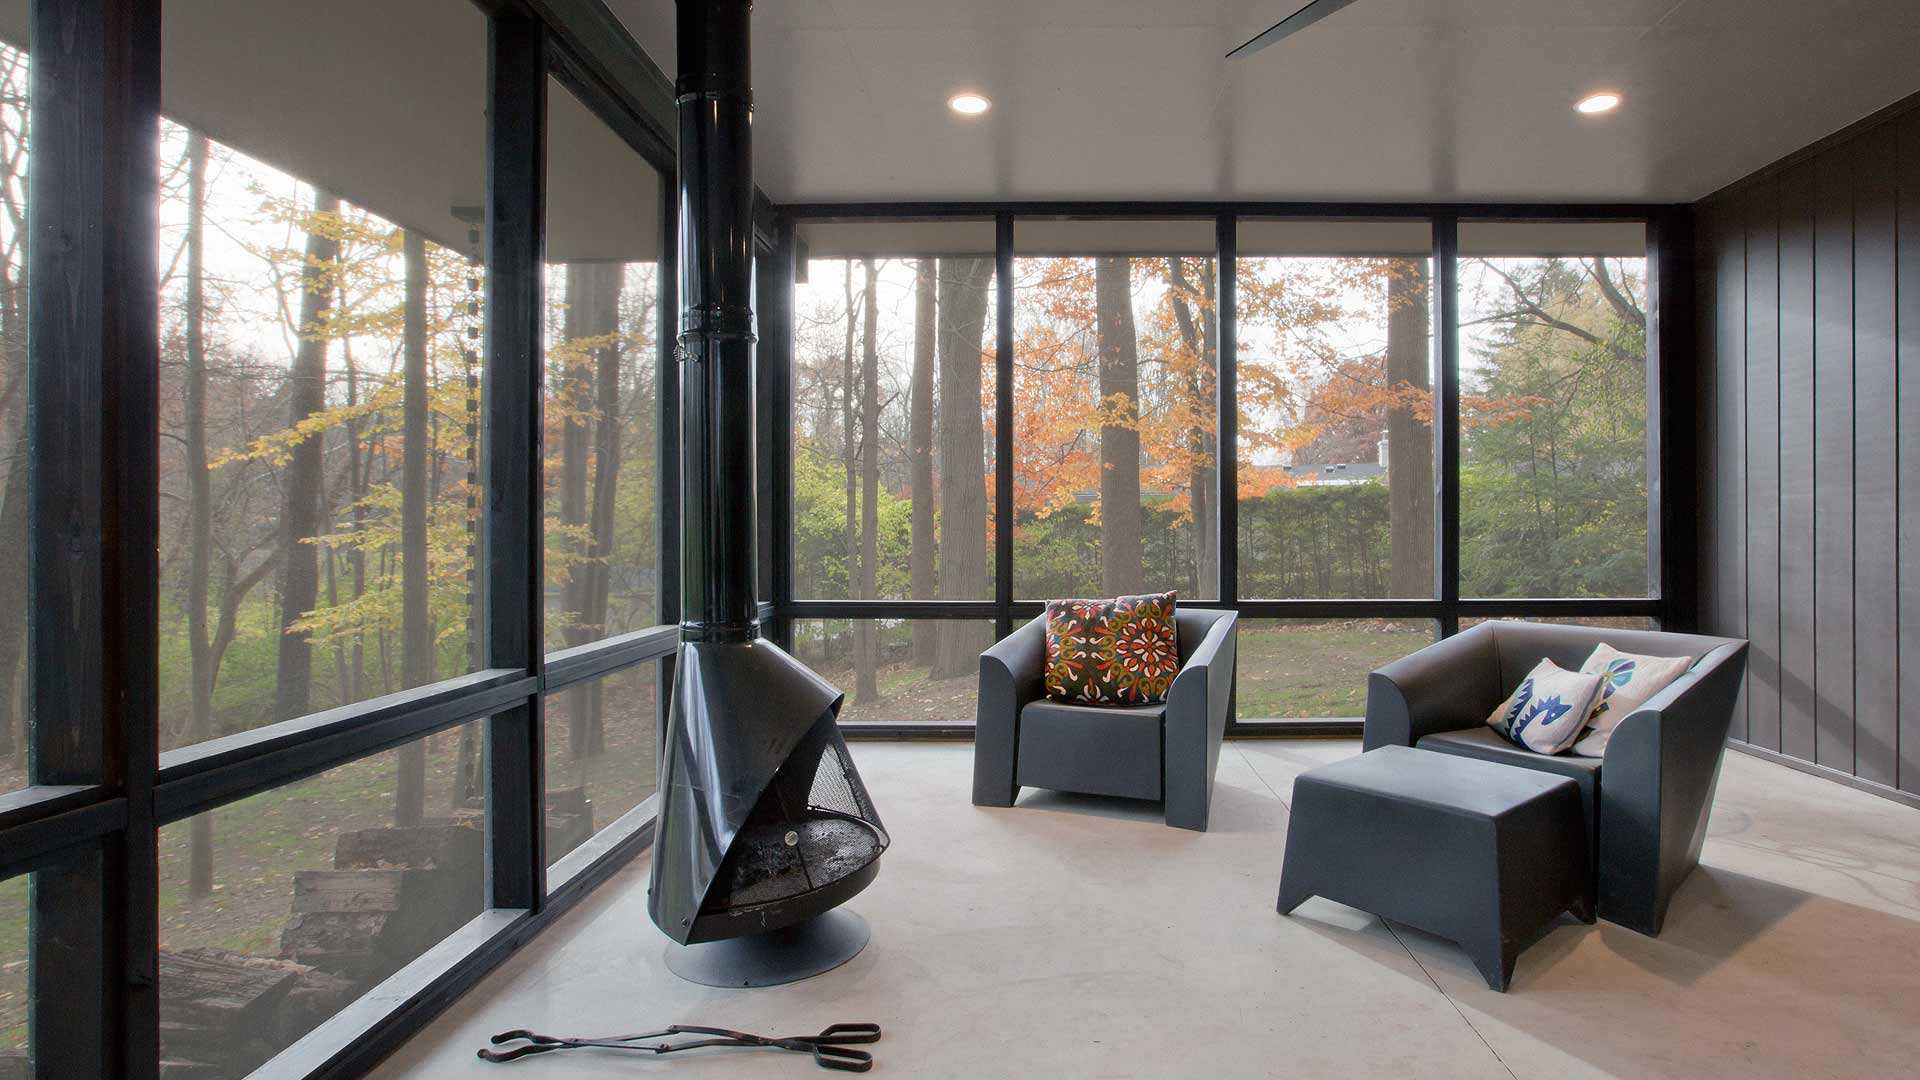 Mid Mod Screened Porch, retro steel fireplace, modern fireplace, porch fireplace, black steel fireplace, porch furniture, wooded site views, porch ceiling fan - Midcentury Modern Renovation - 81st Street - Indianapolis, Christopher Short, Architect, HAUS Architecture